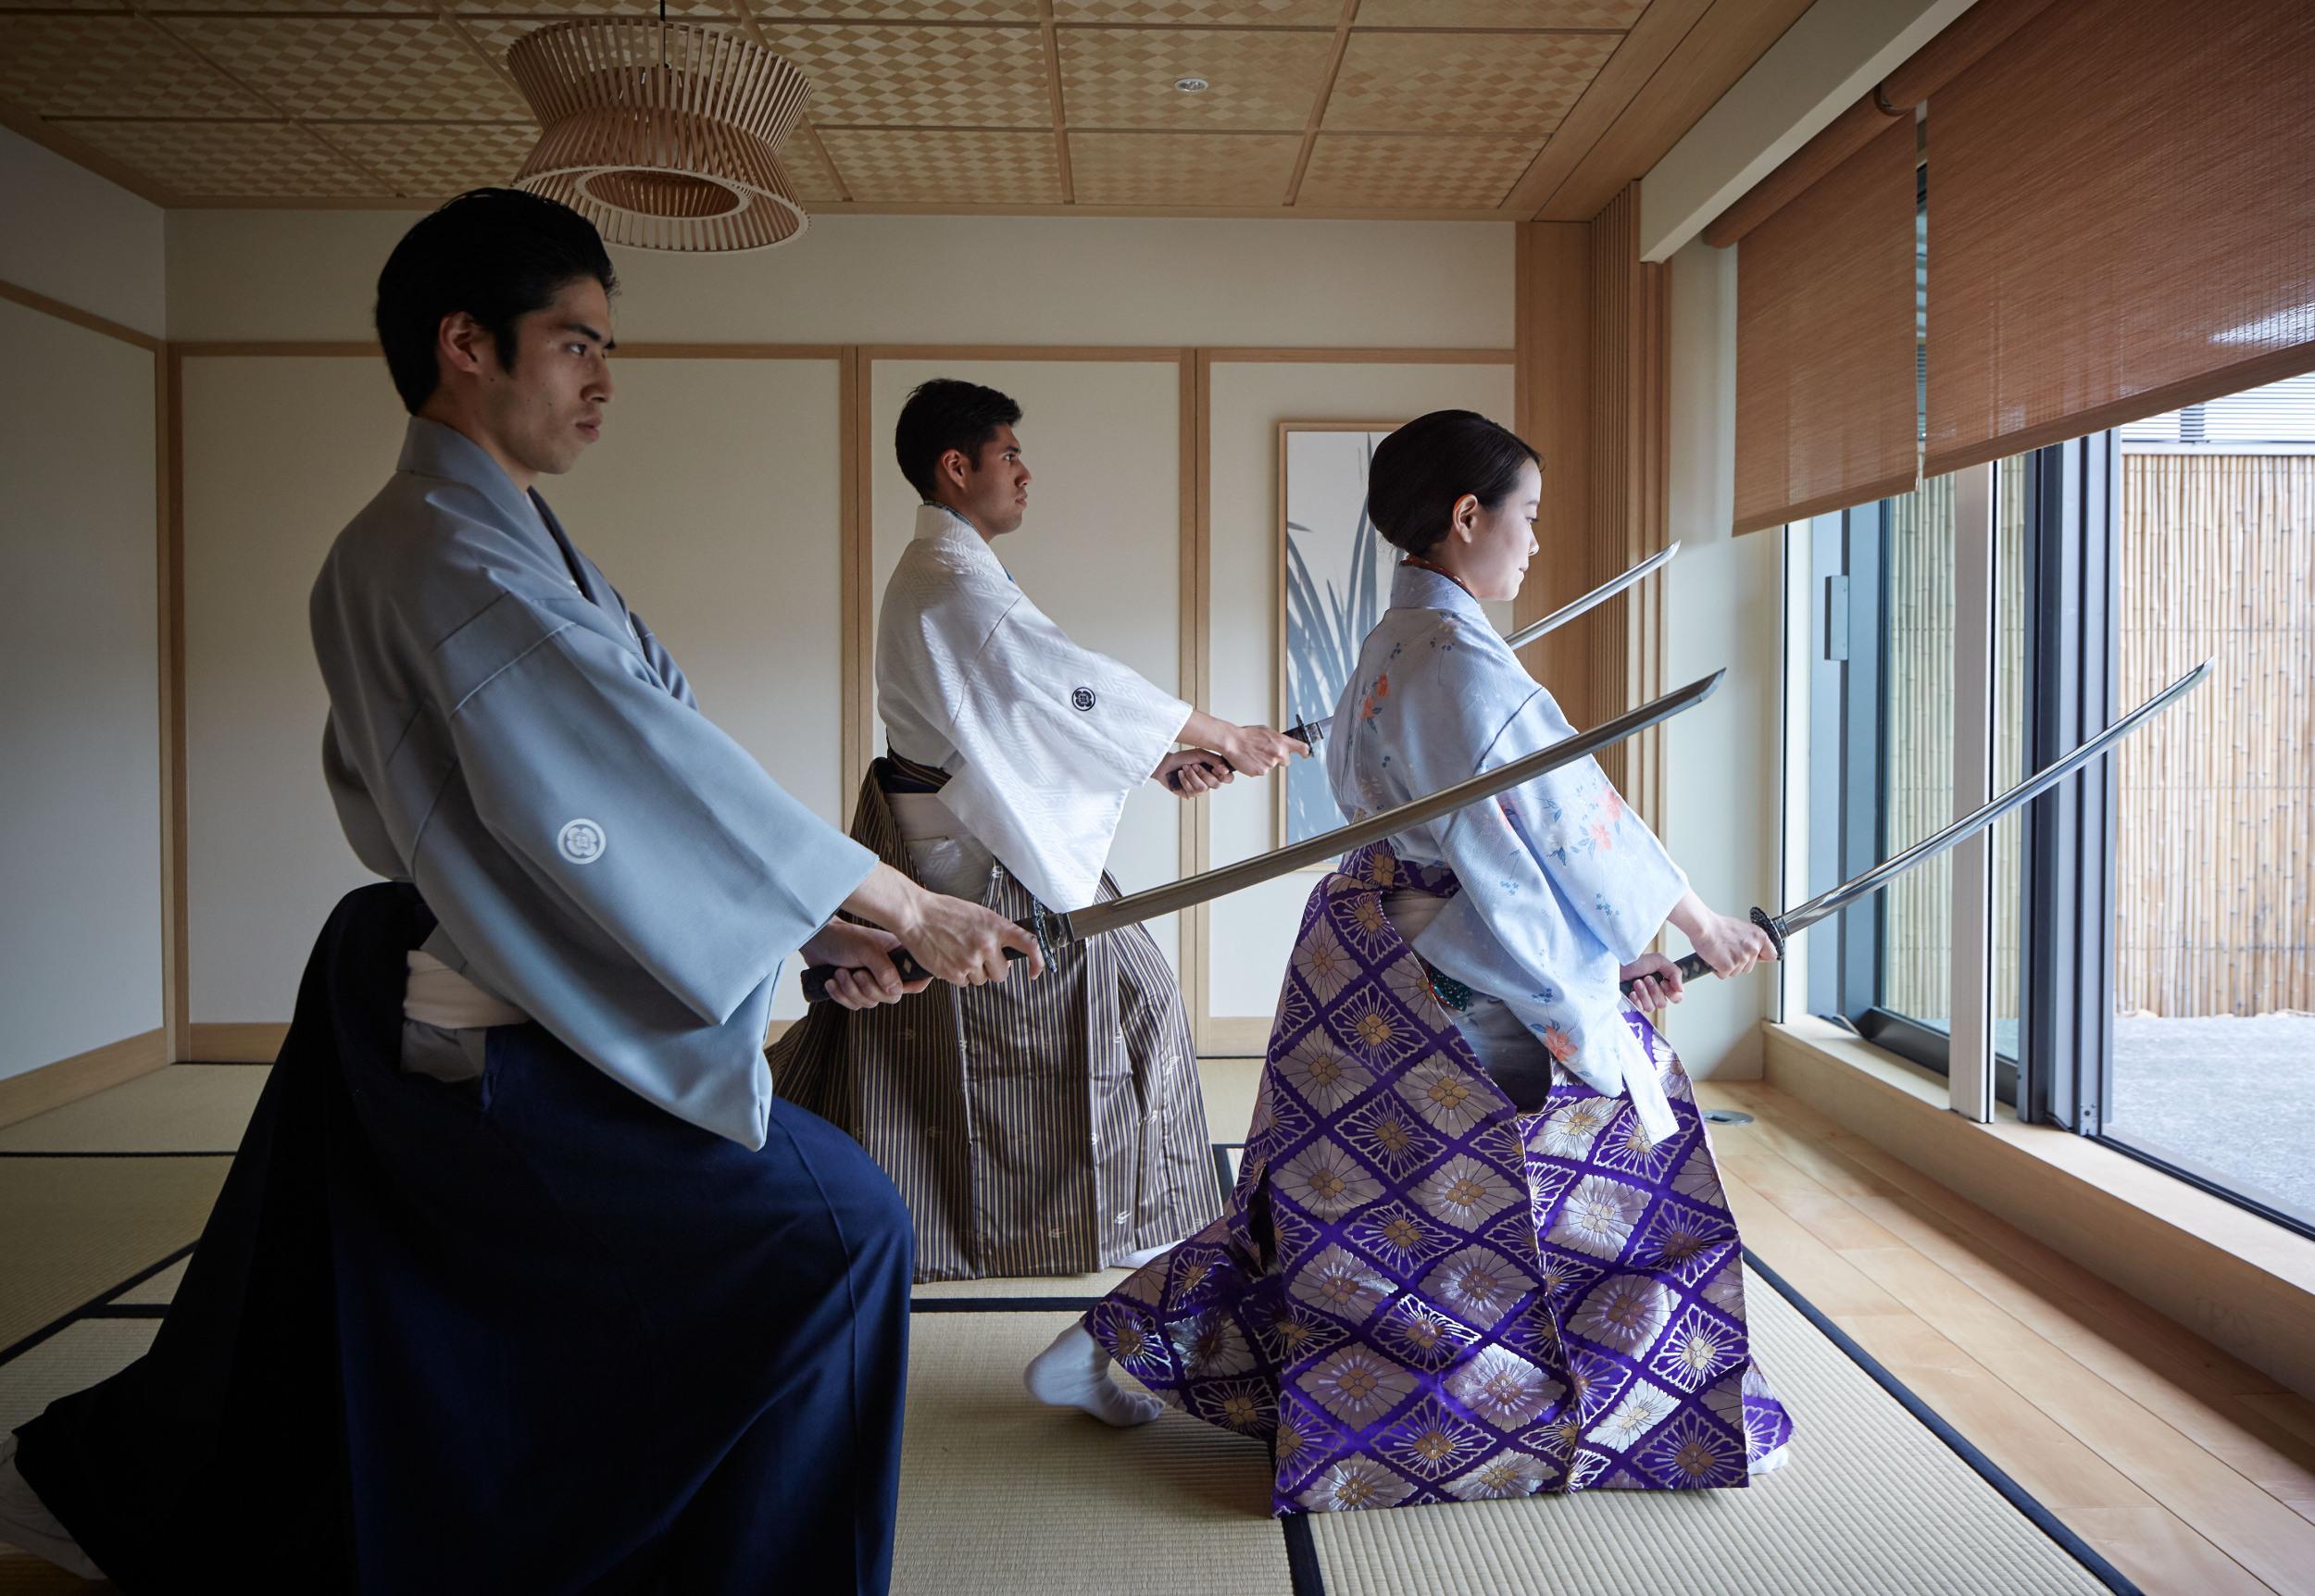 The Ritz-Carlton Kyoto offers special classes in Japanese sword dancing.